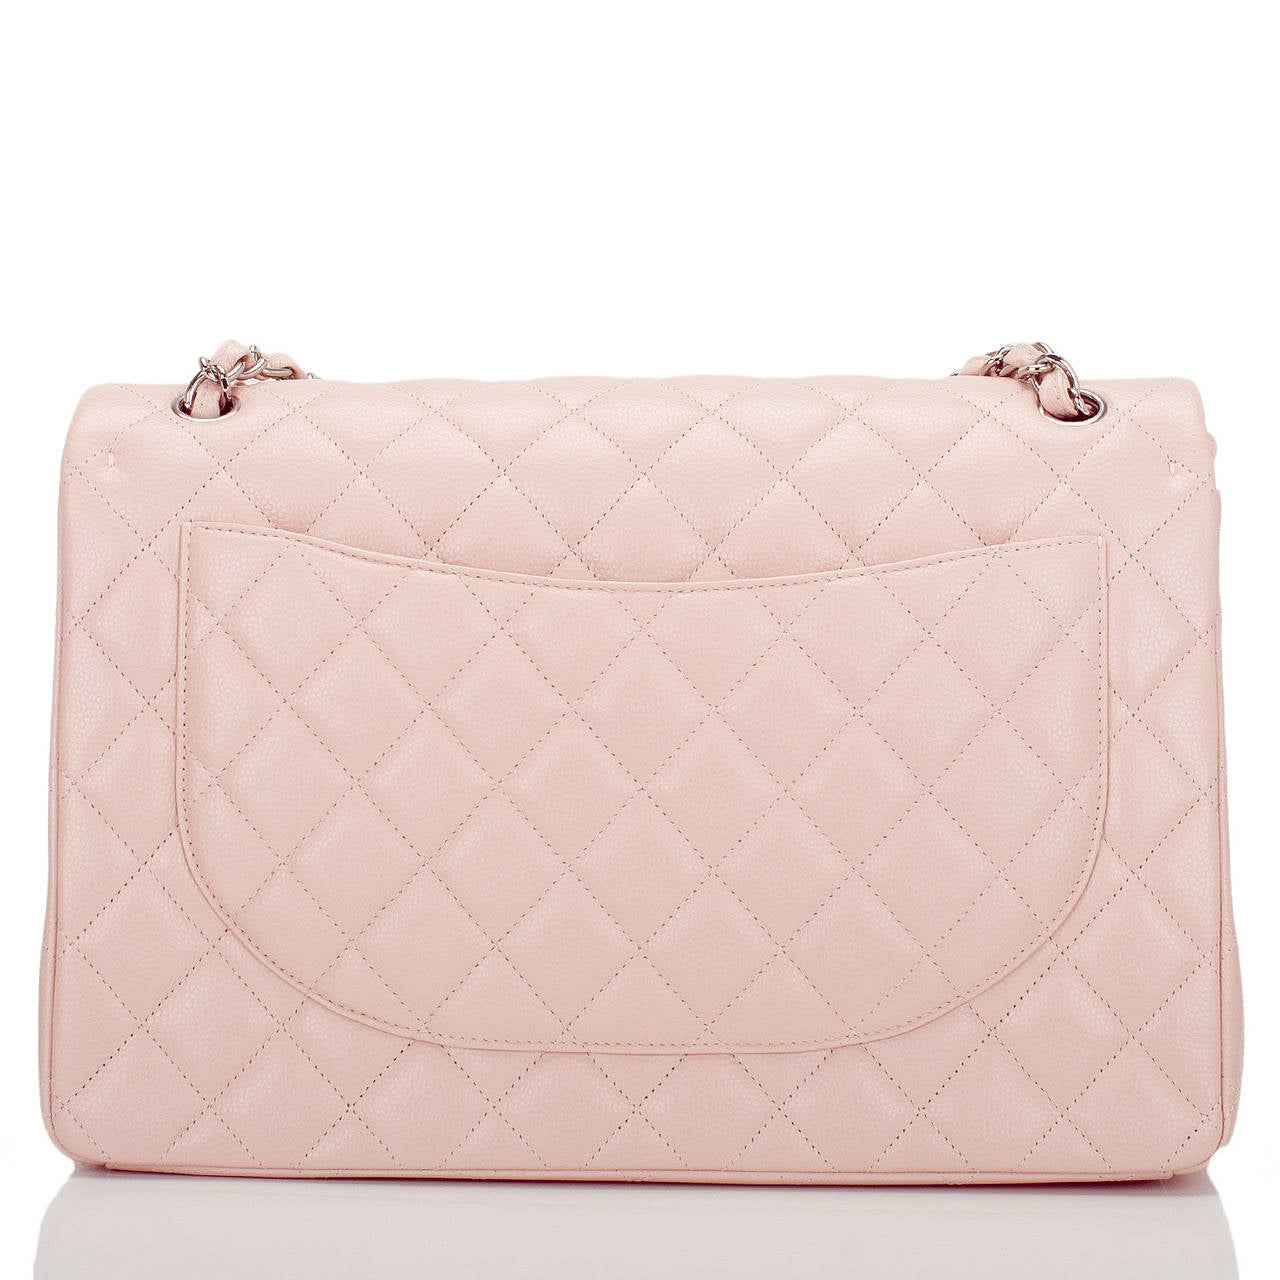 Chanel Light Pink Quilted Caviar Maxi Classic Double Flap Bag In New never worn Condition For Sale In New York, NY